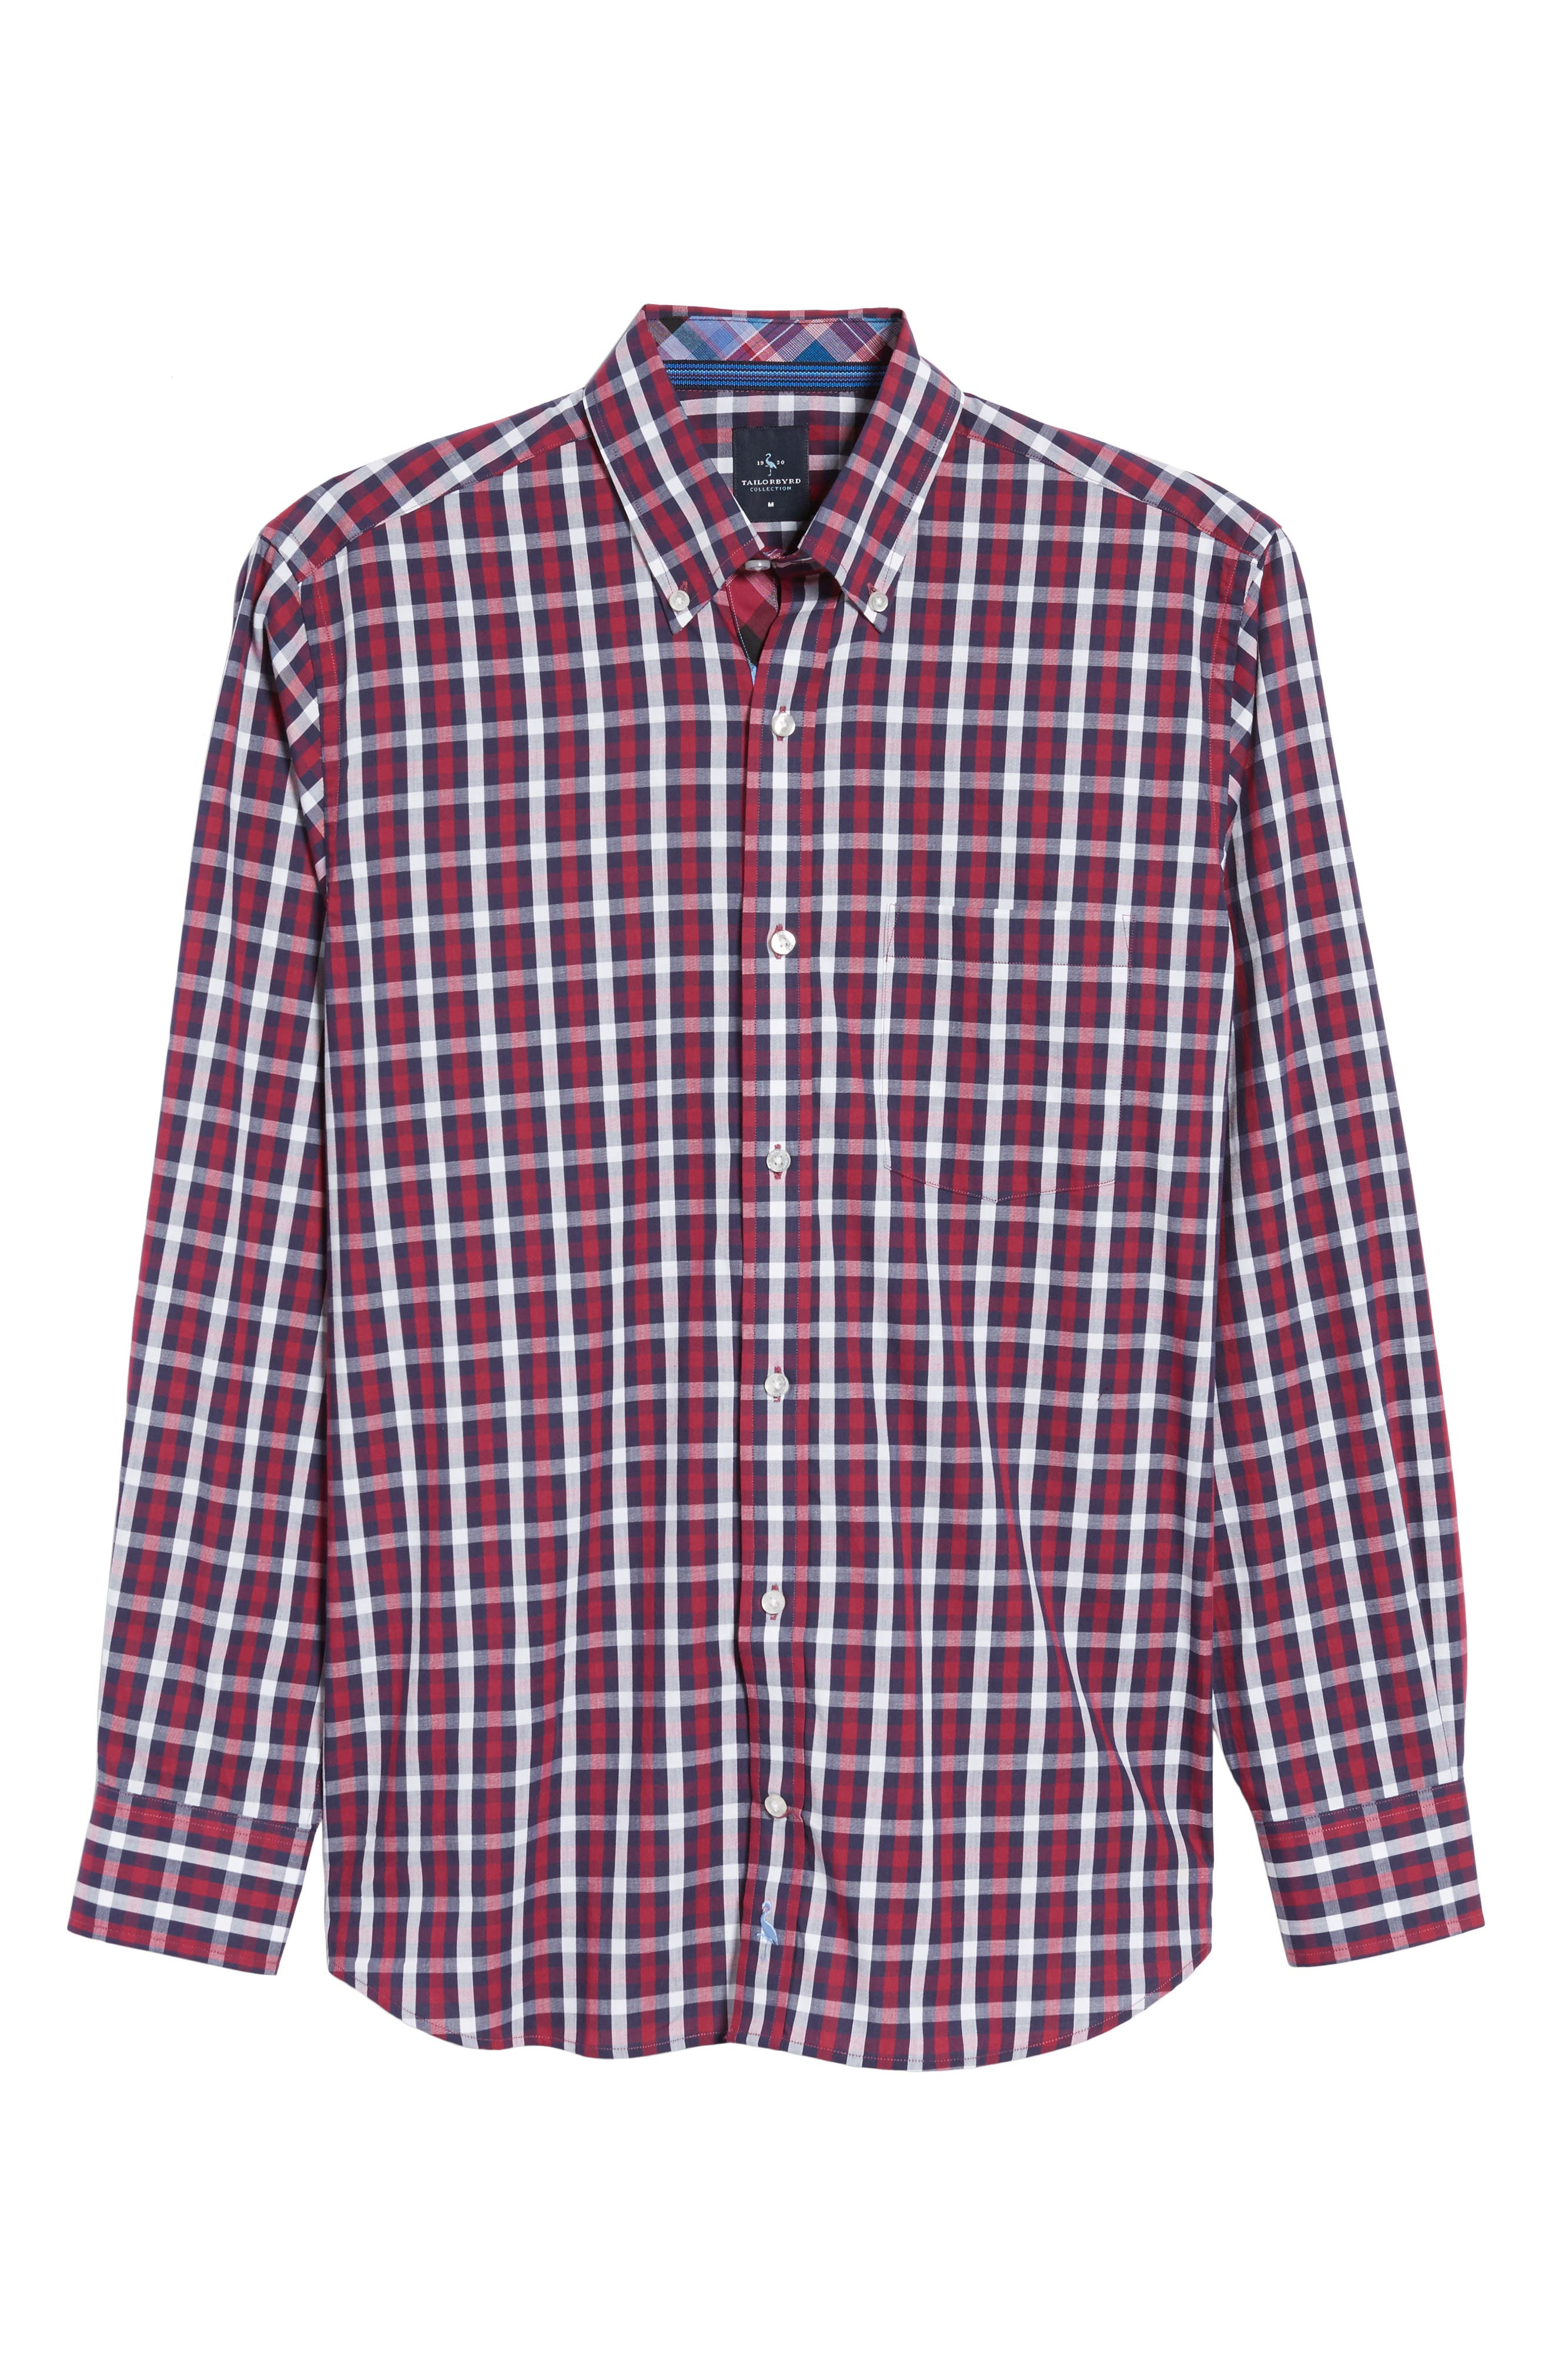 Covington Check Sport Shirt,                             Alternate thumbnail 6, color,                             617